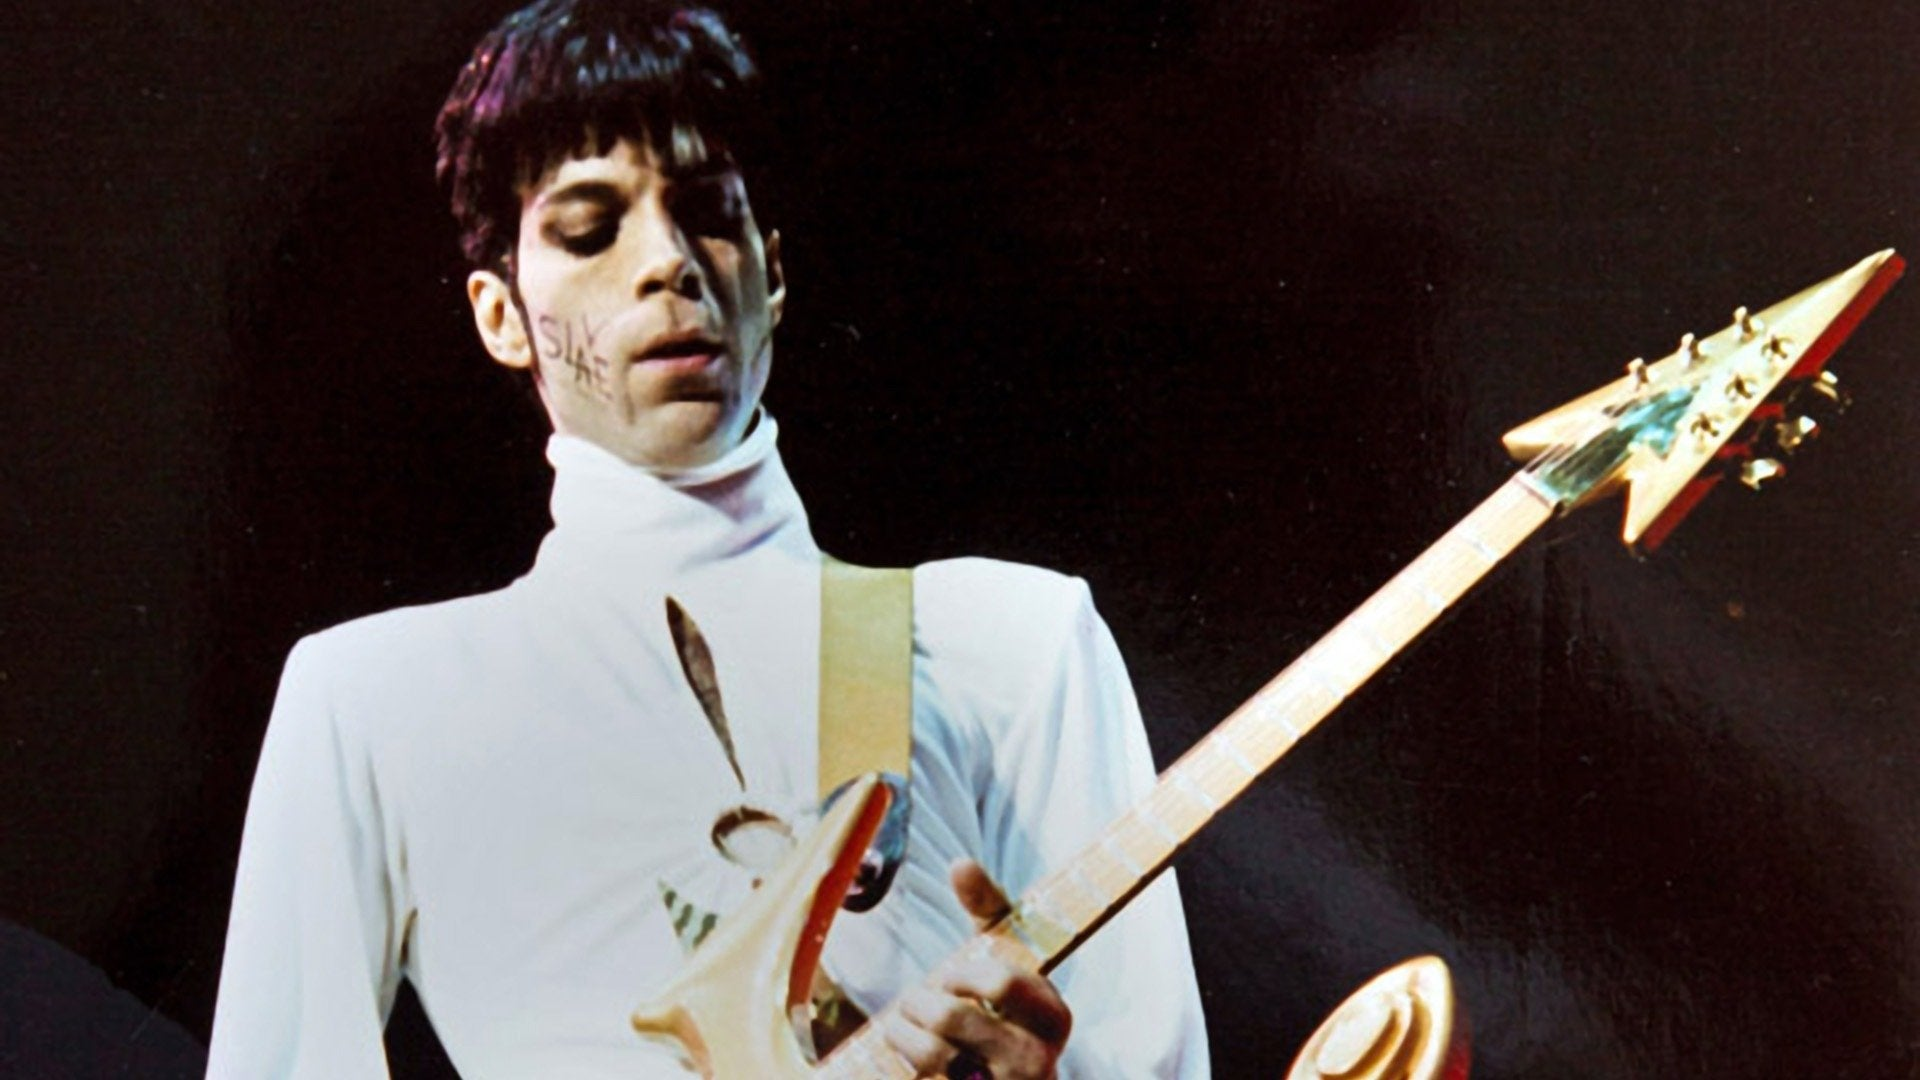 Slave Trade: How Prince Re-Made the Music Business